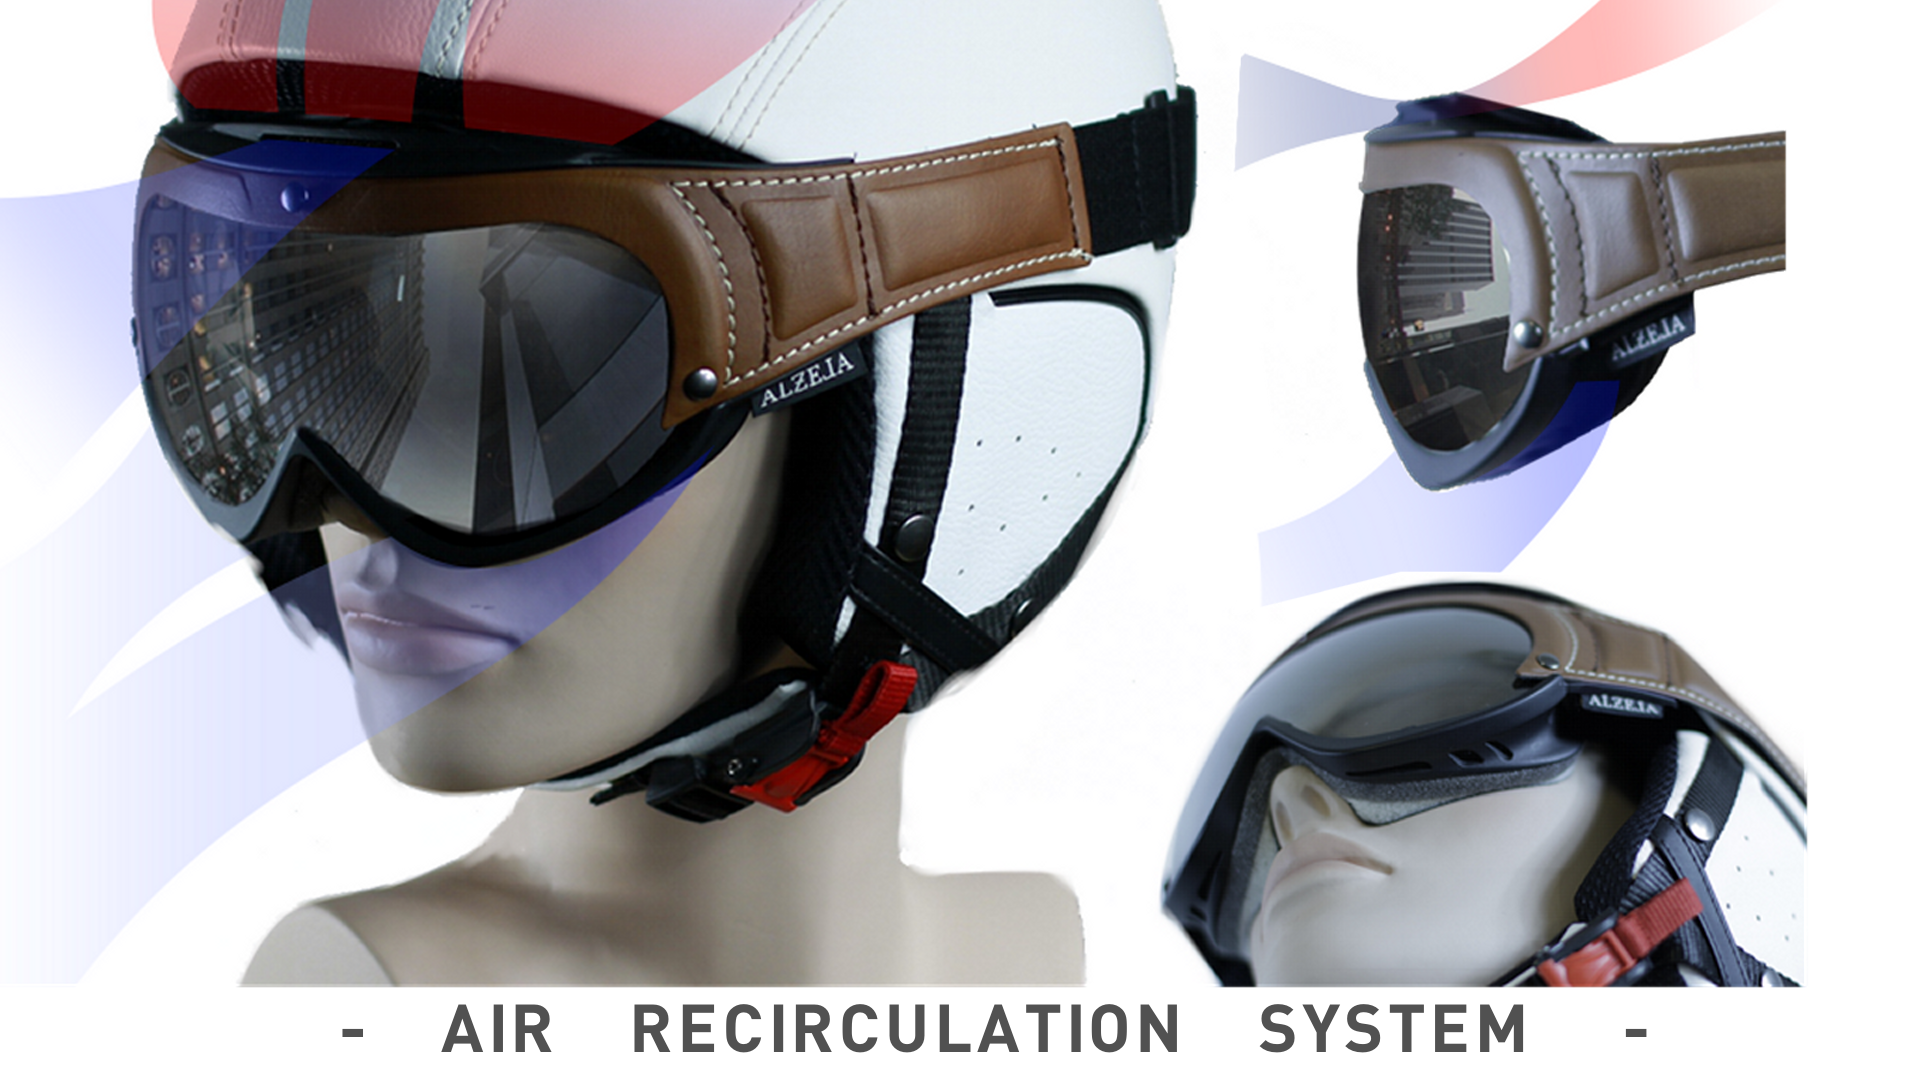 ALZELA-Goggles-AIR VENTS